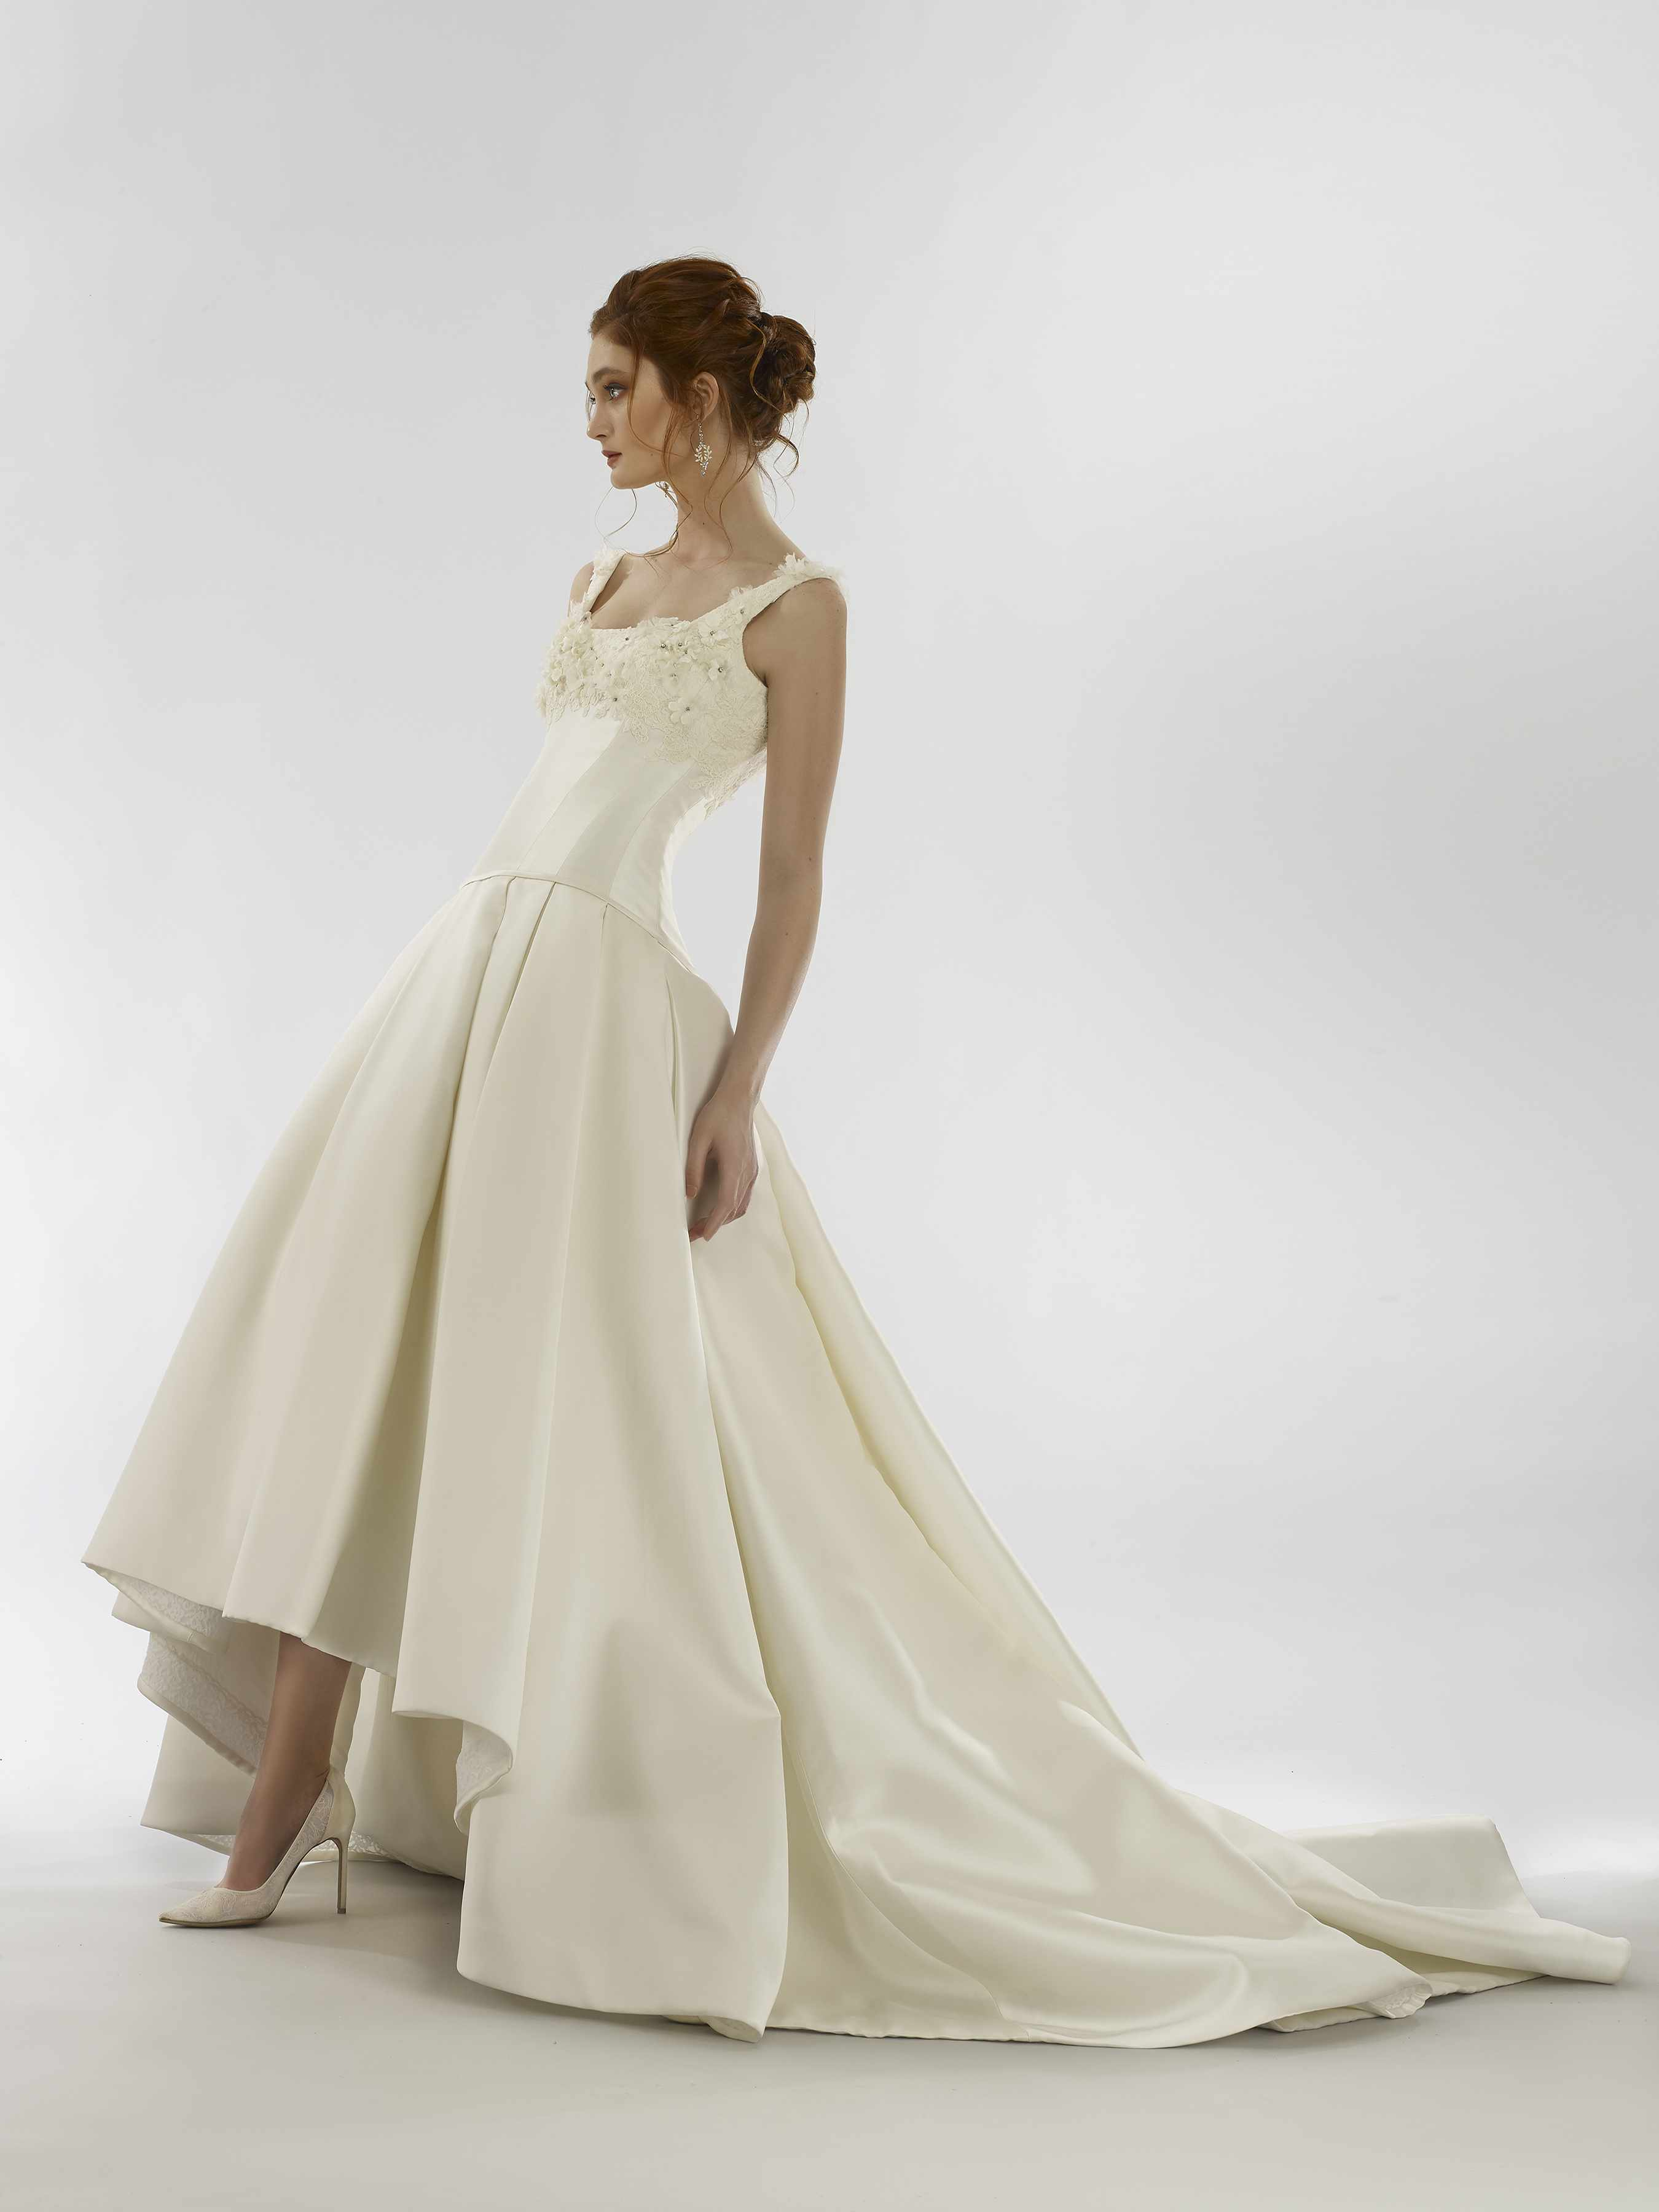 Model in high-low sleeveless ballgown with floral appliques